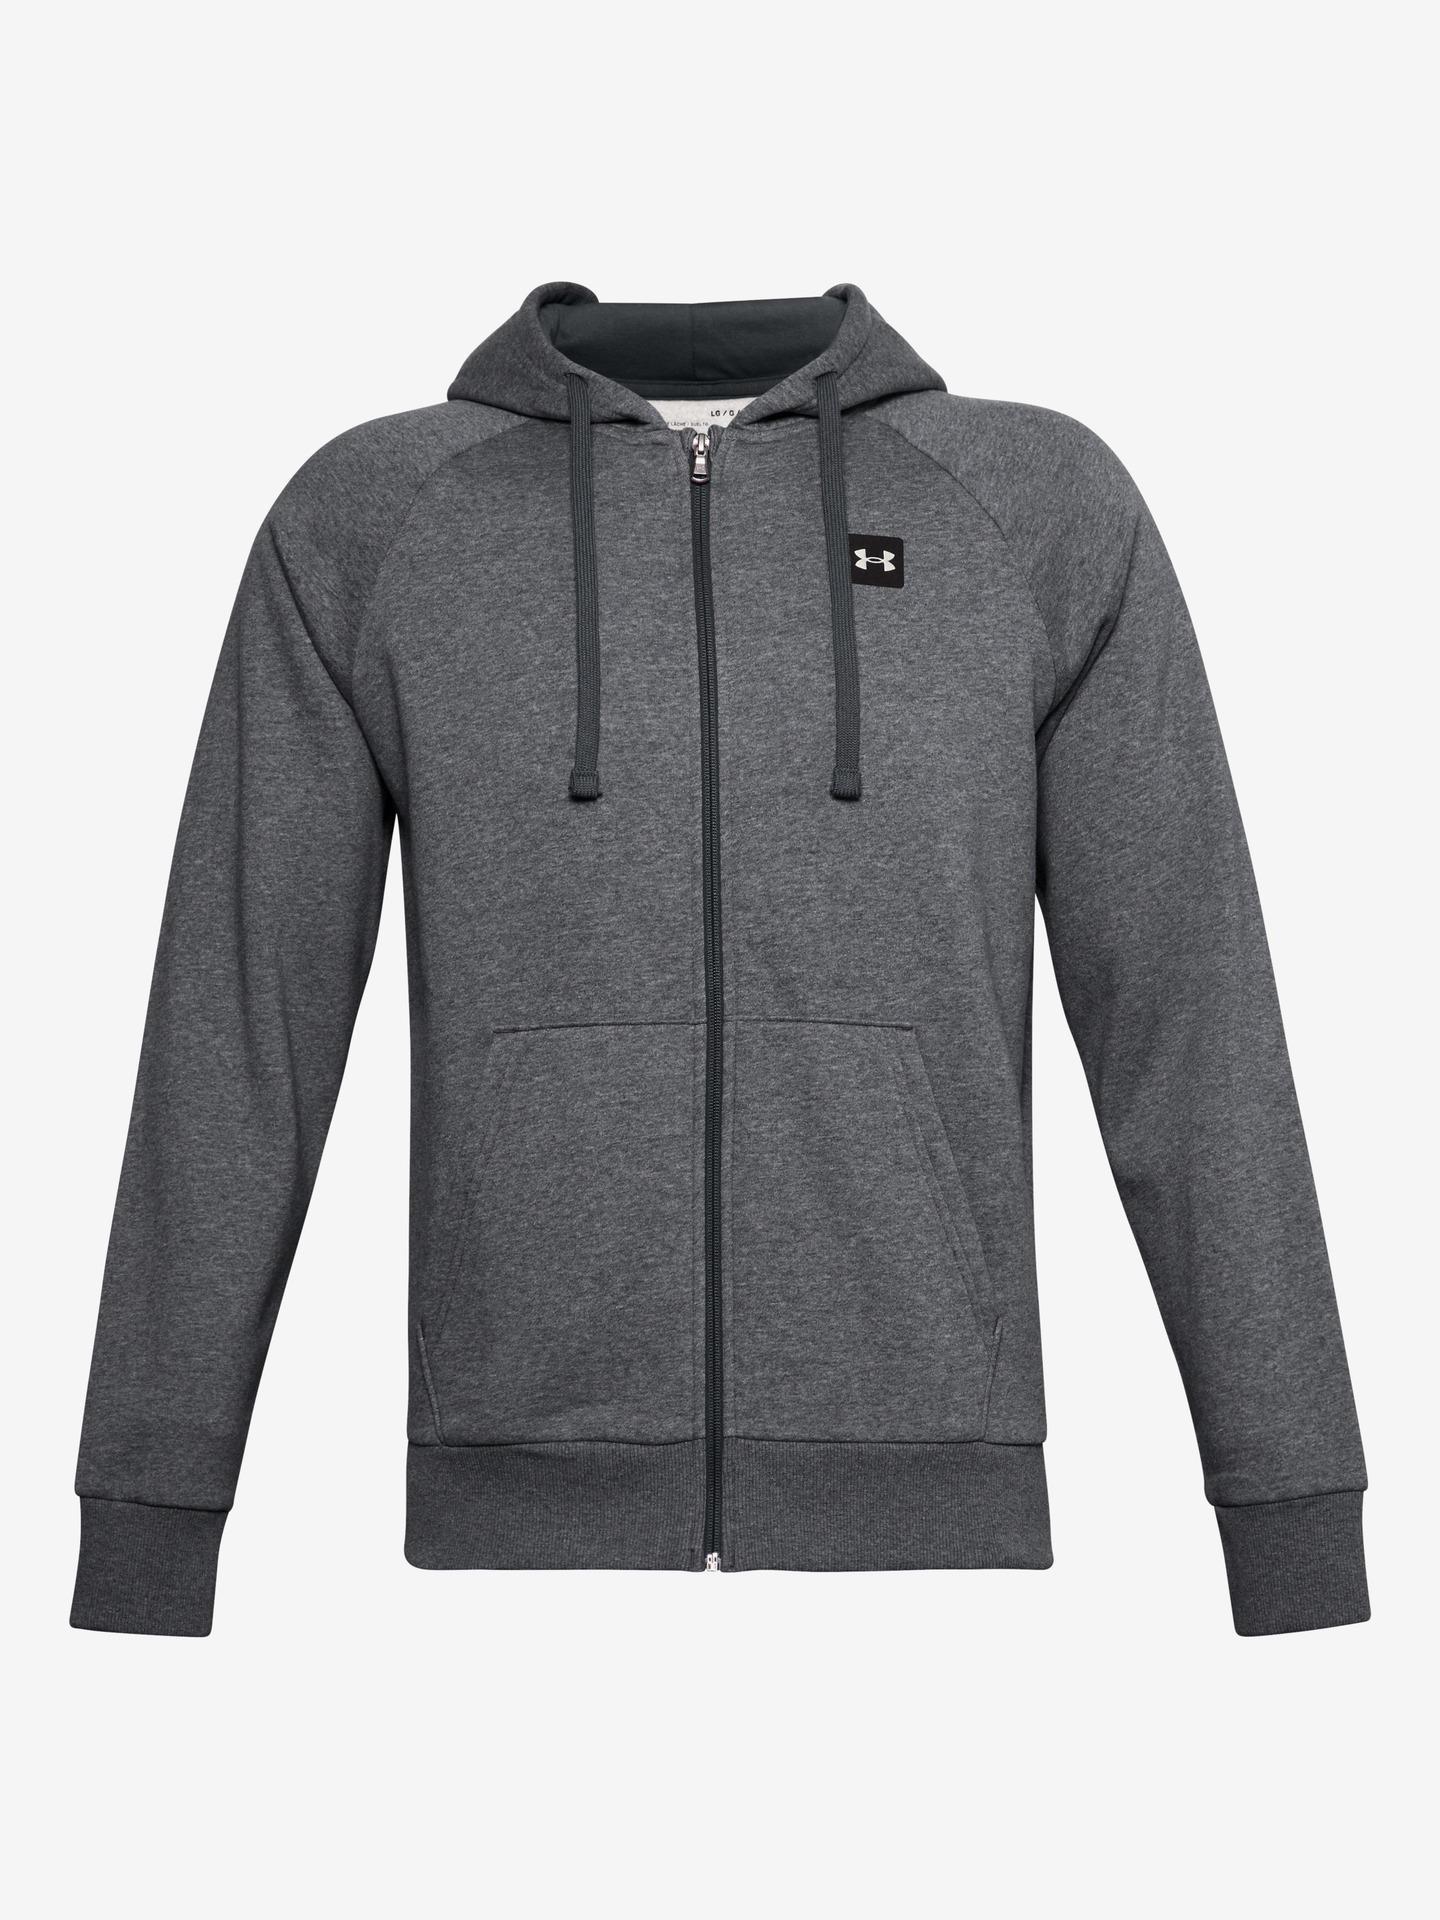 Rival Fleece Mikina Under Armour Šedá